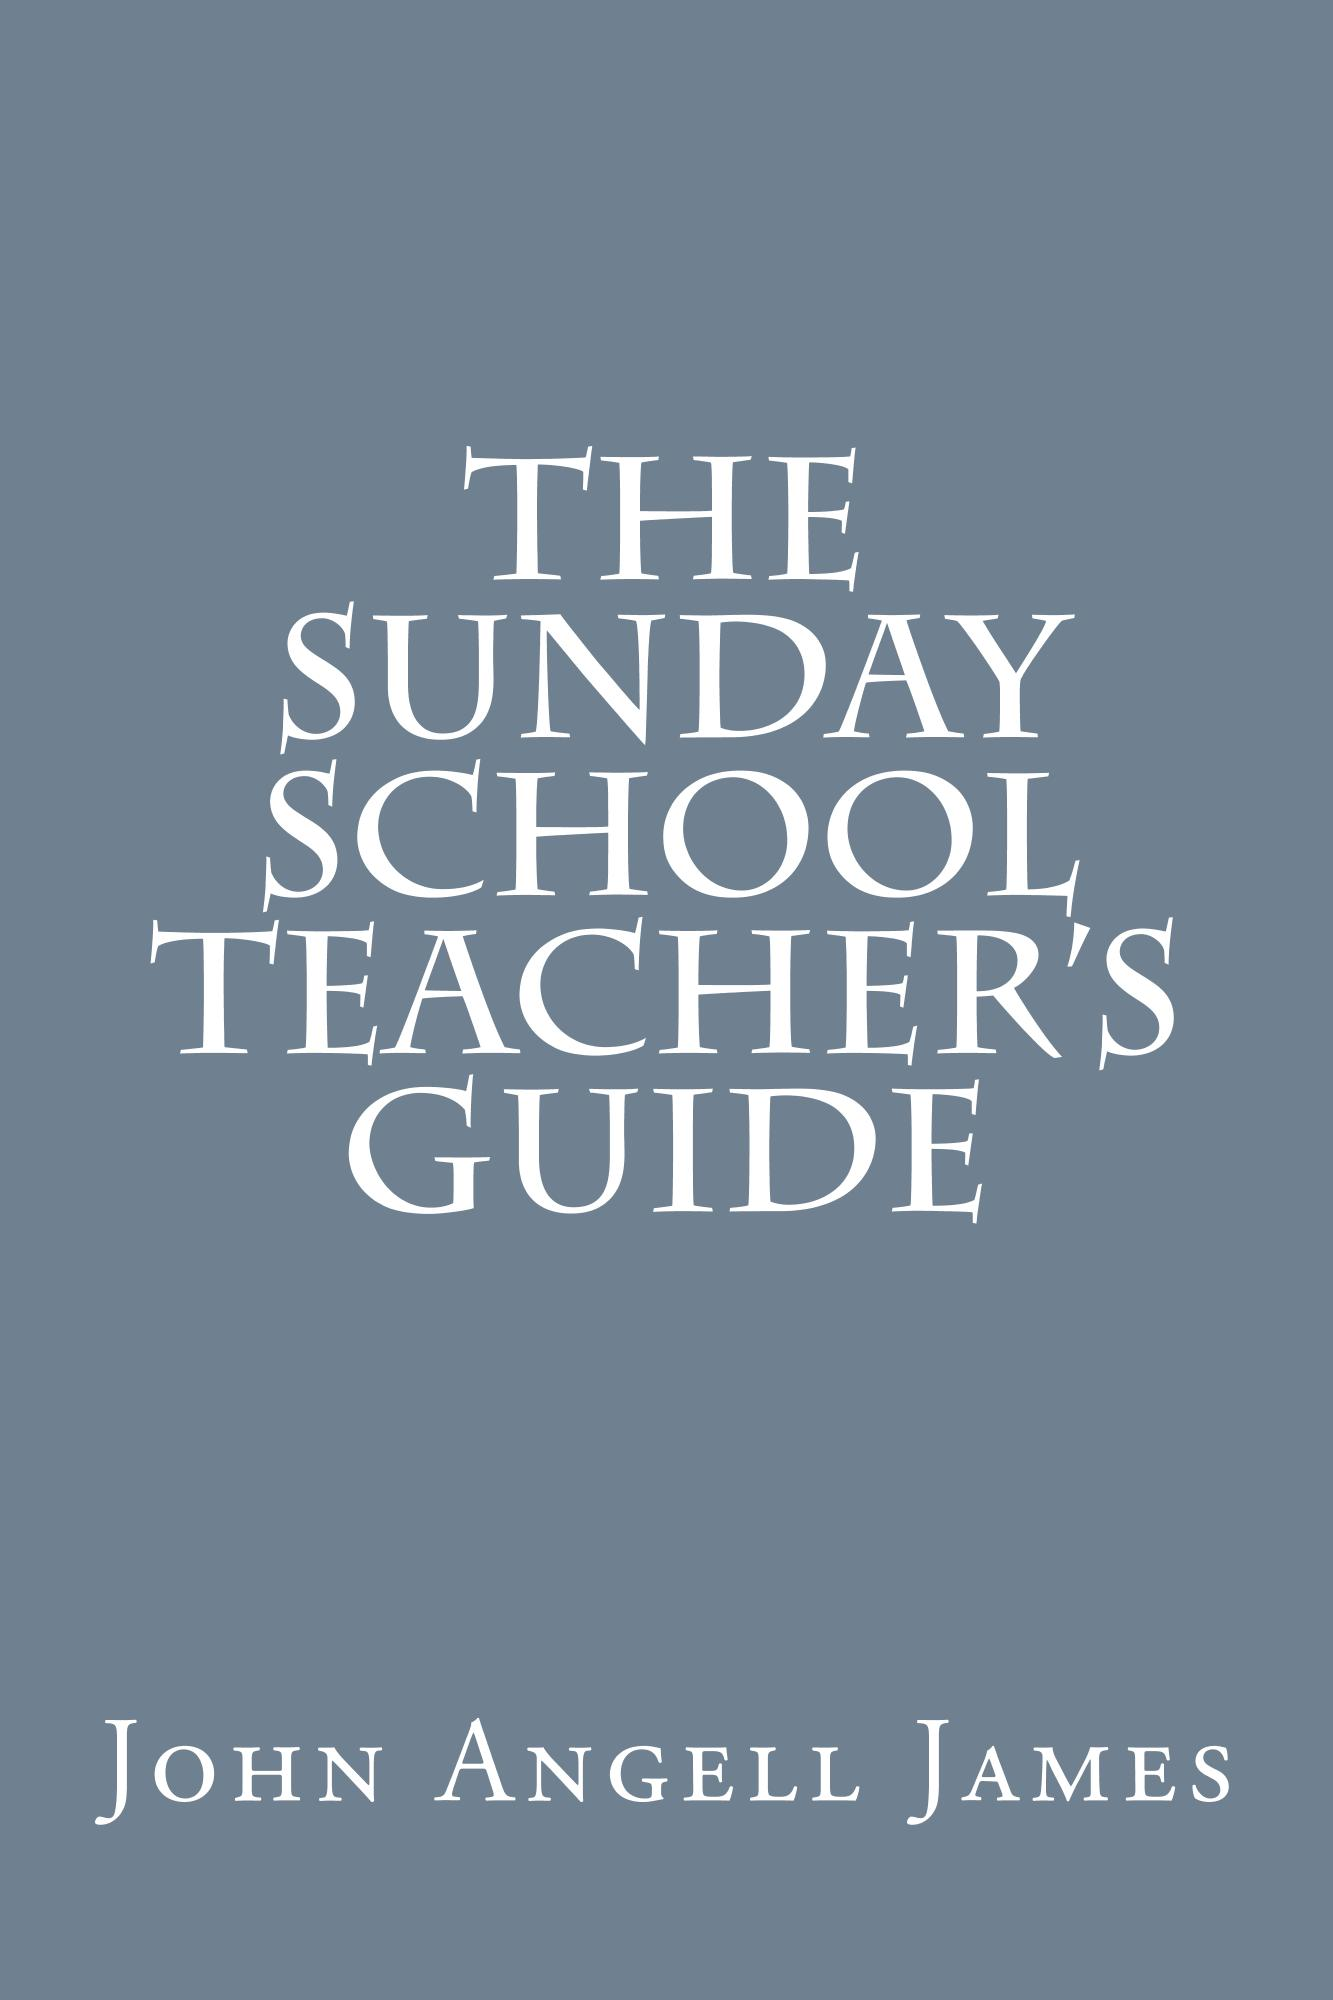 Sunday School Book Cover ~ The sunday school teacher s guide by john angell james